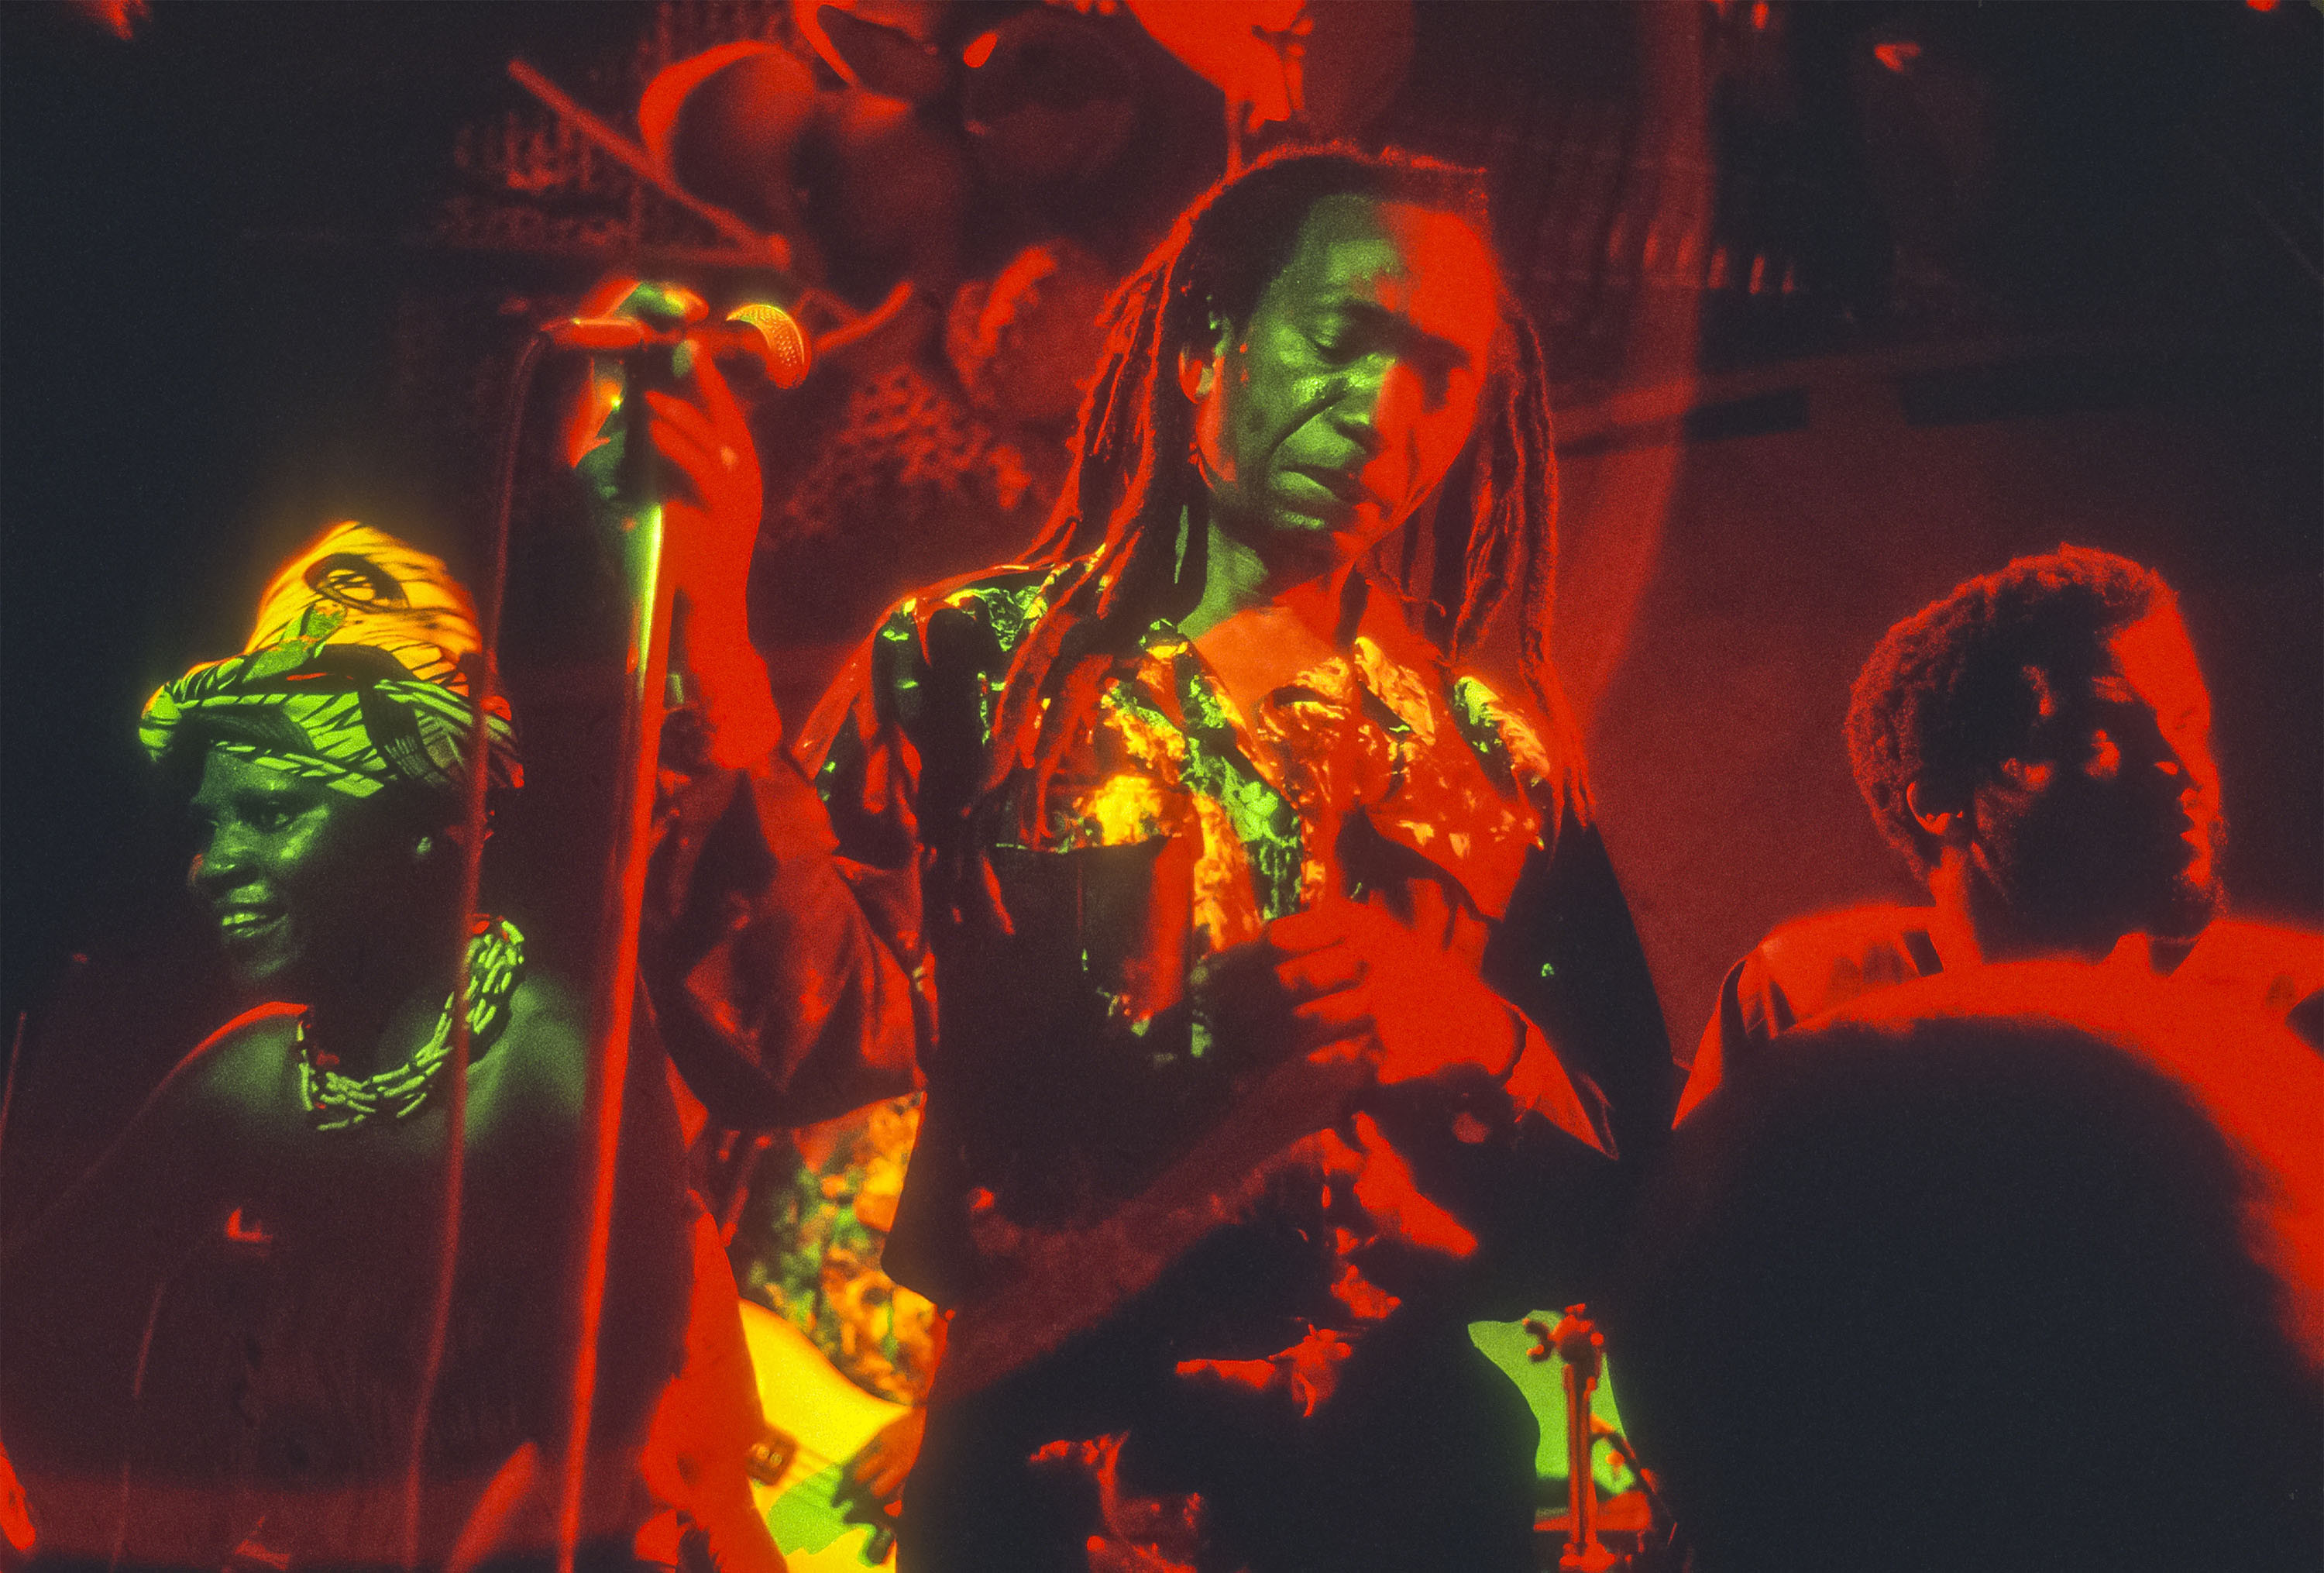 Zimbabwean musician Thomas Mapfumo performs, with his band the Blacks Unlimited, on stage at the nightclub S.O.B.'s, New York, New York, September 27, 1989. (Photo by Jack Vartoogian/Getty Images)